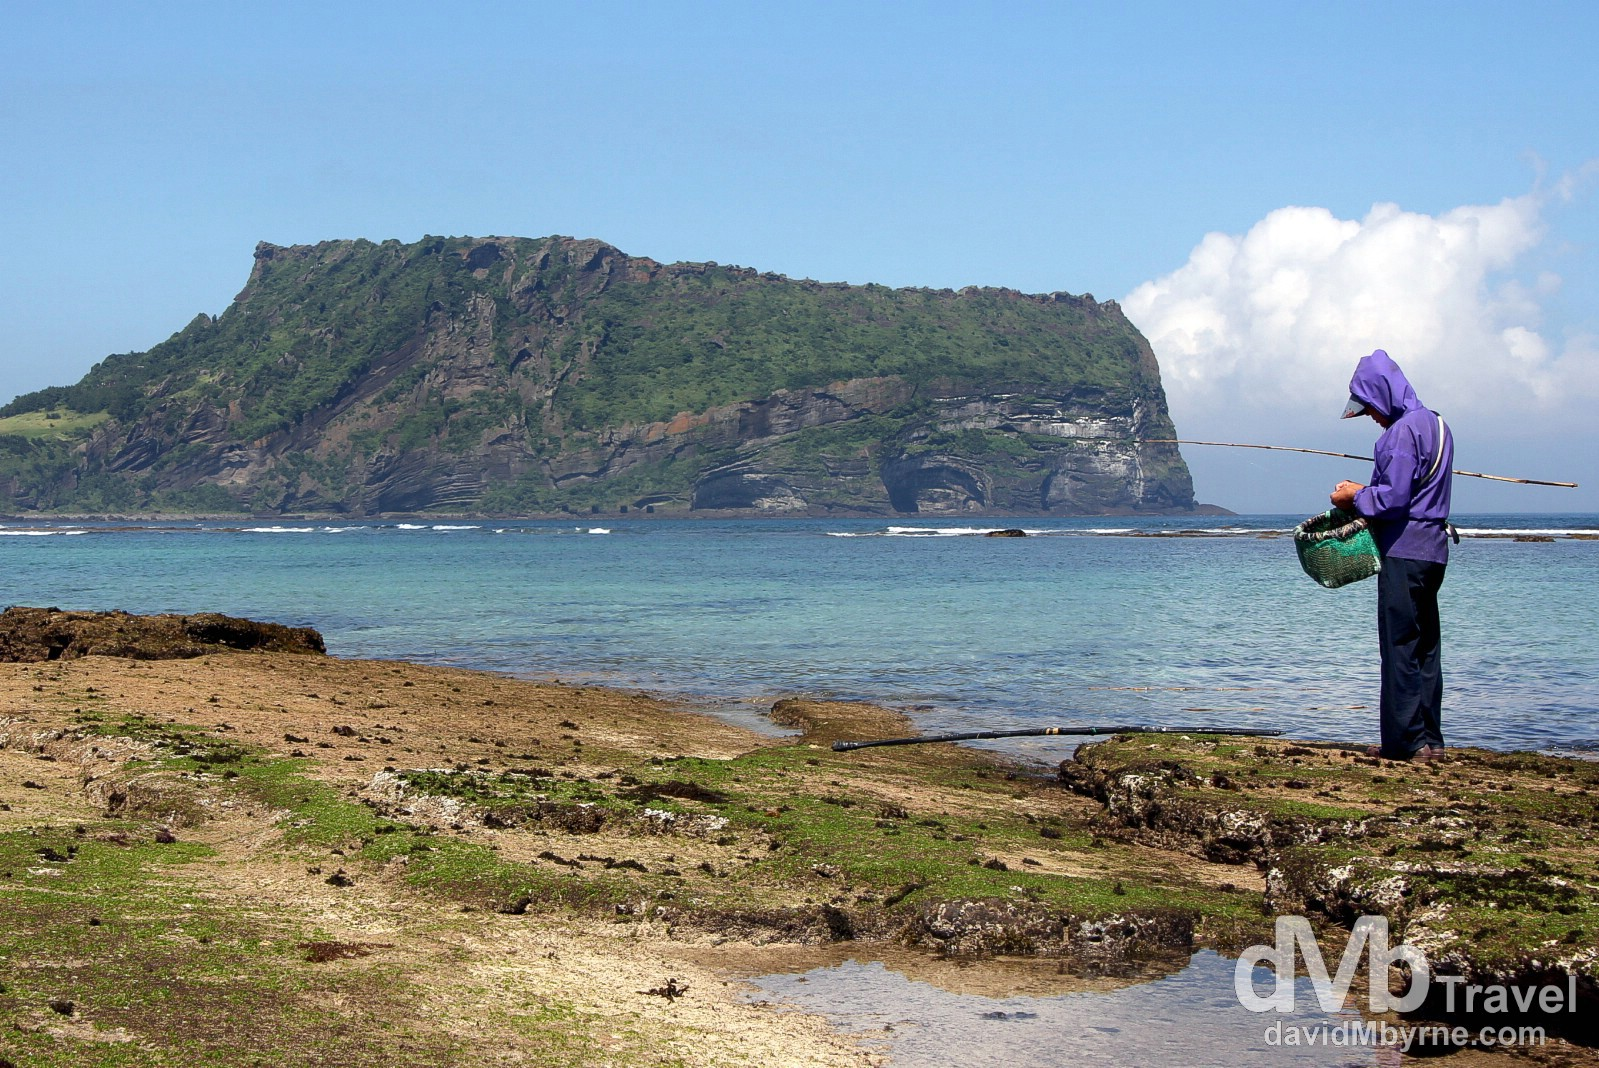 A fisherman fishes the waters near Seongsan Ilchubong (Sunrise Peak) on Jeju-do, South Korea. July 16th, 2011